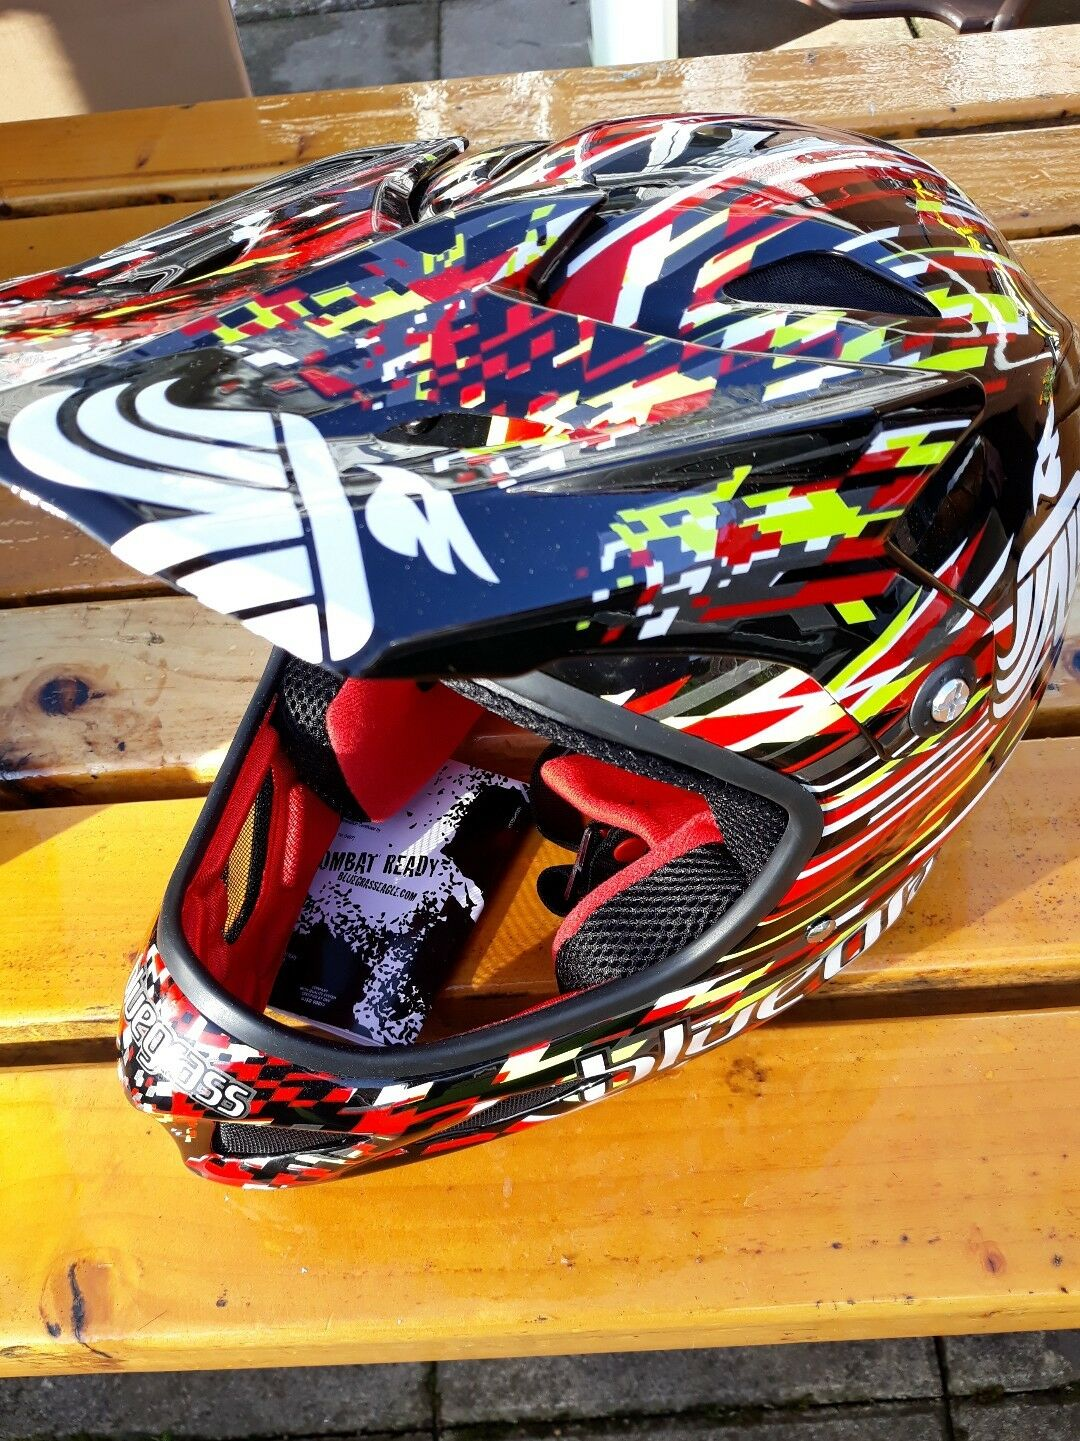 blueegrass Brave Large factory 13  red full face mtb helmet, brand new  best prices and freshest styles